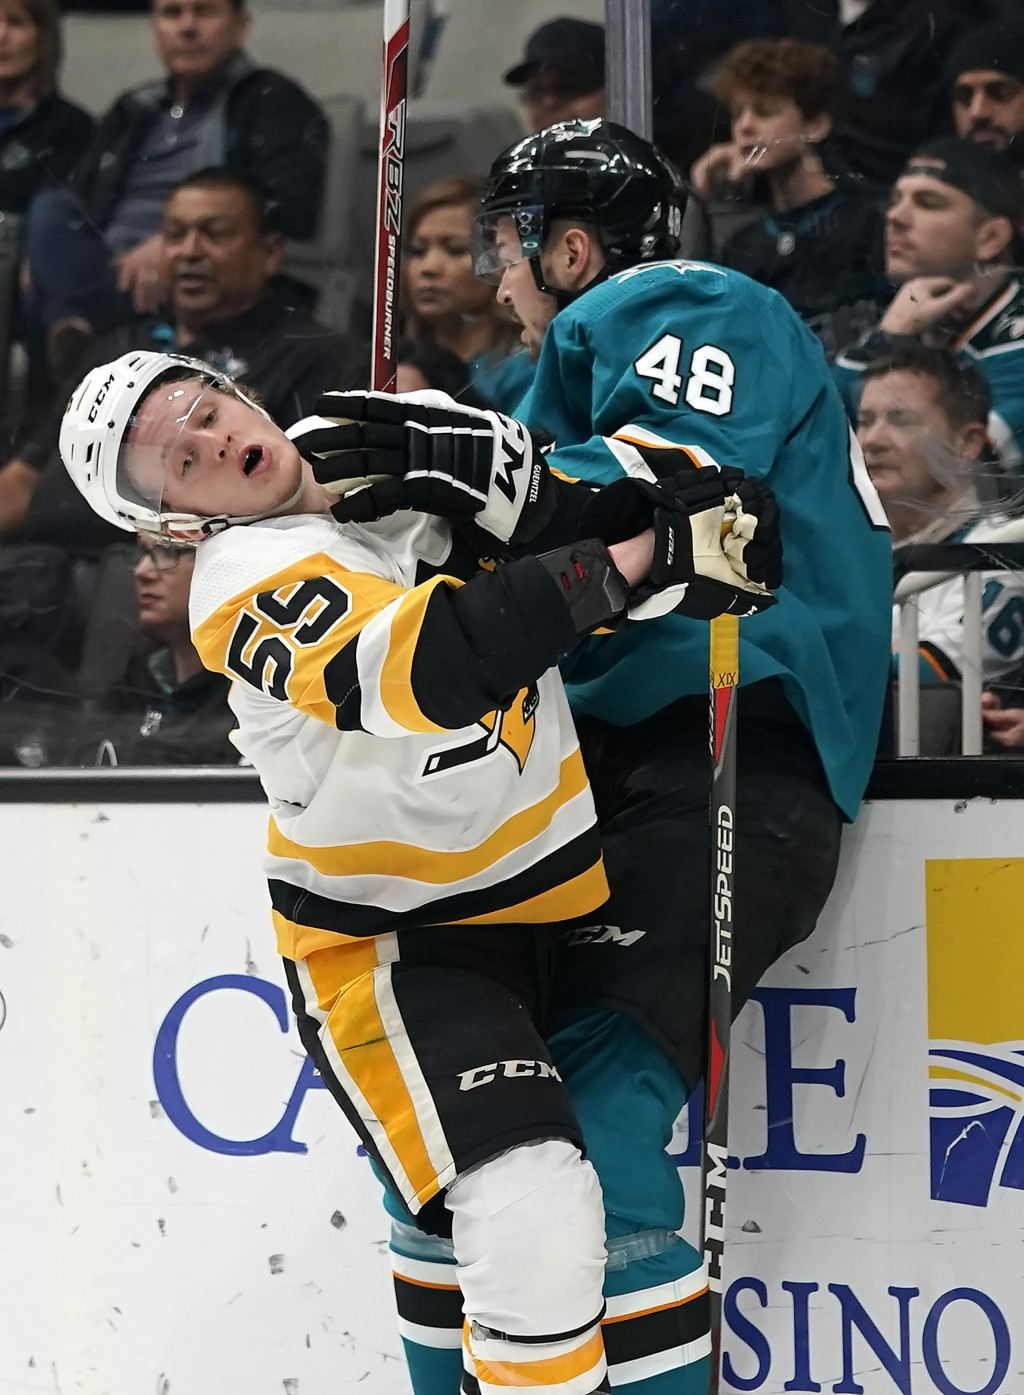 San Jose Sharks center Tomas Hertl (48) is checked into the boards by Pittsburgh Penguins left wing Jake Guentzel (59) during the first period of an N